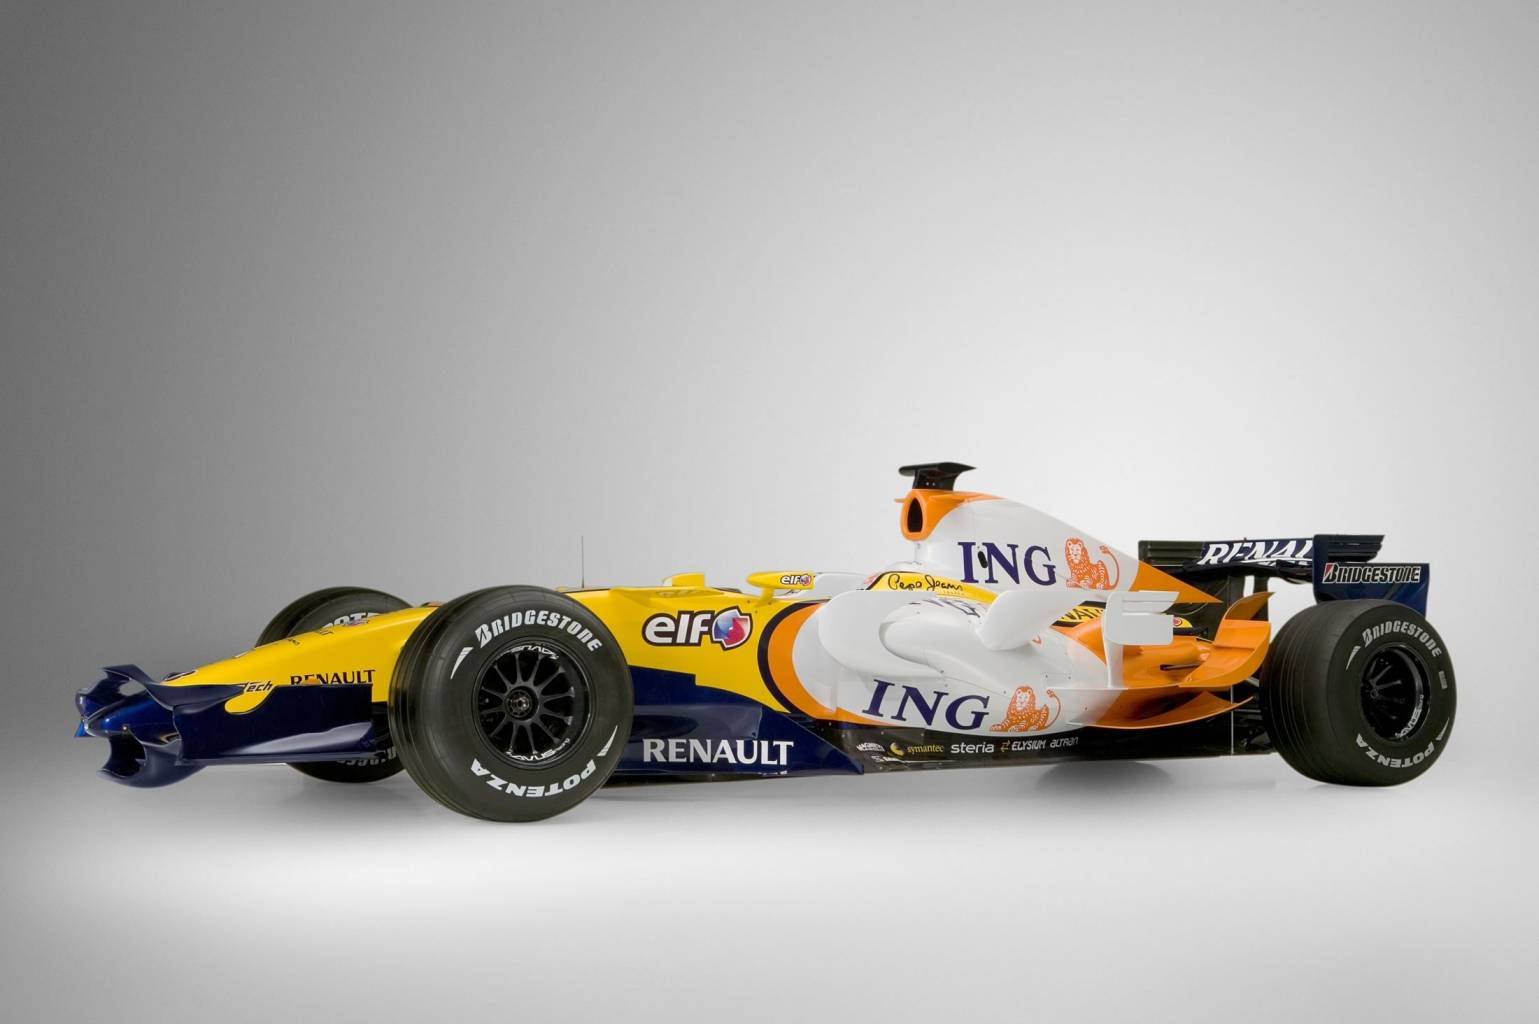 Renault r28 photo - 6